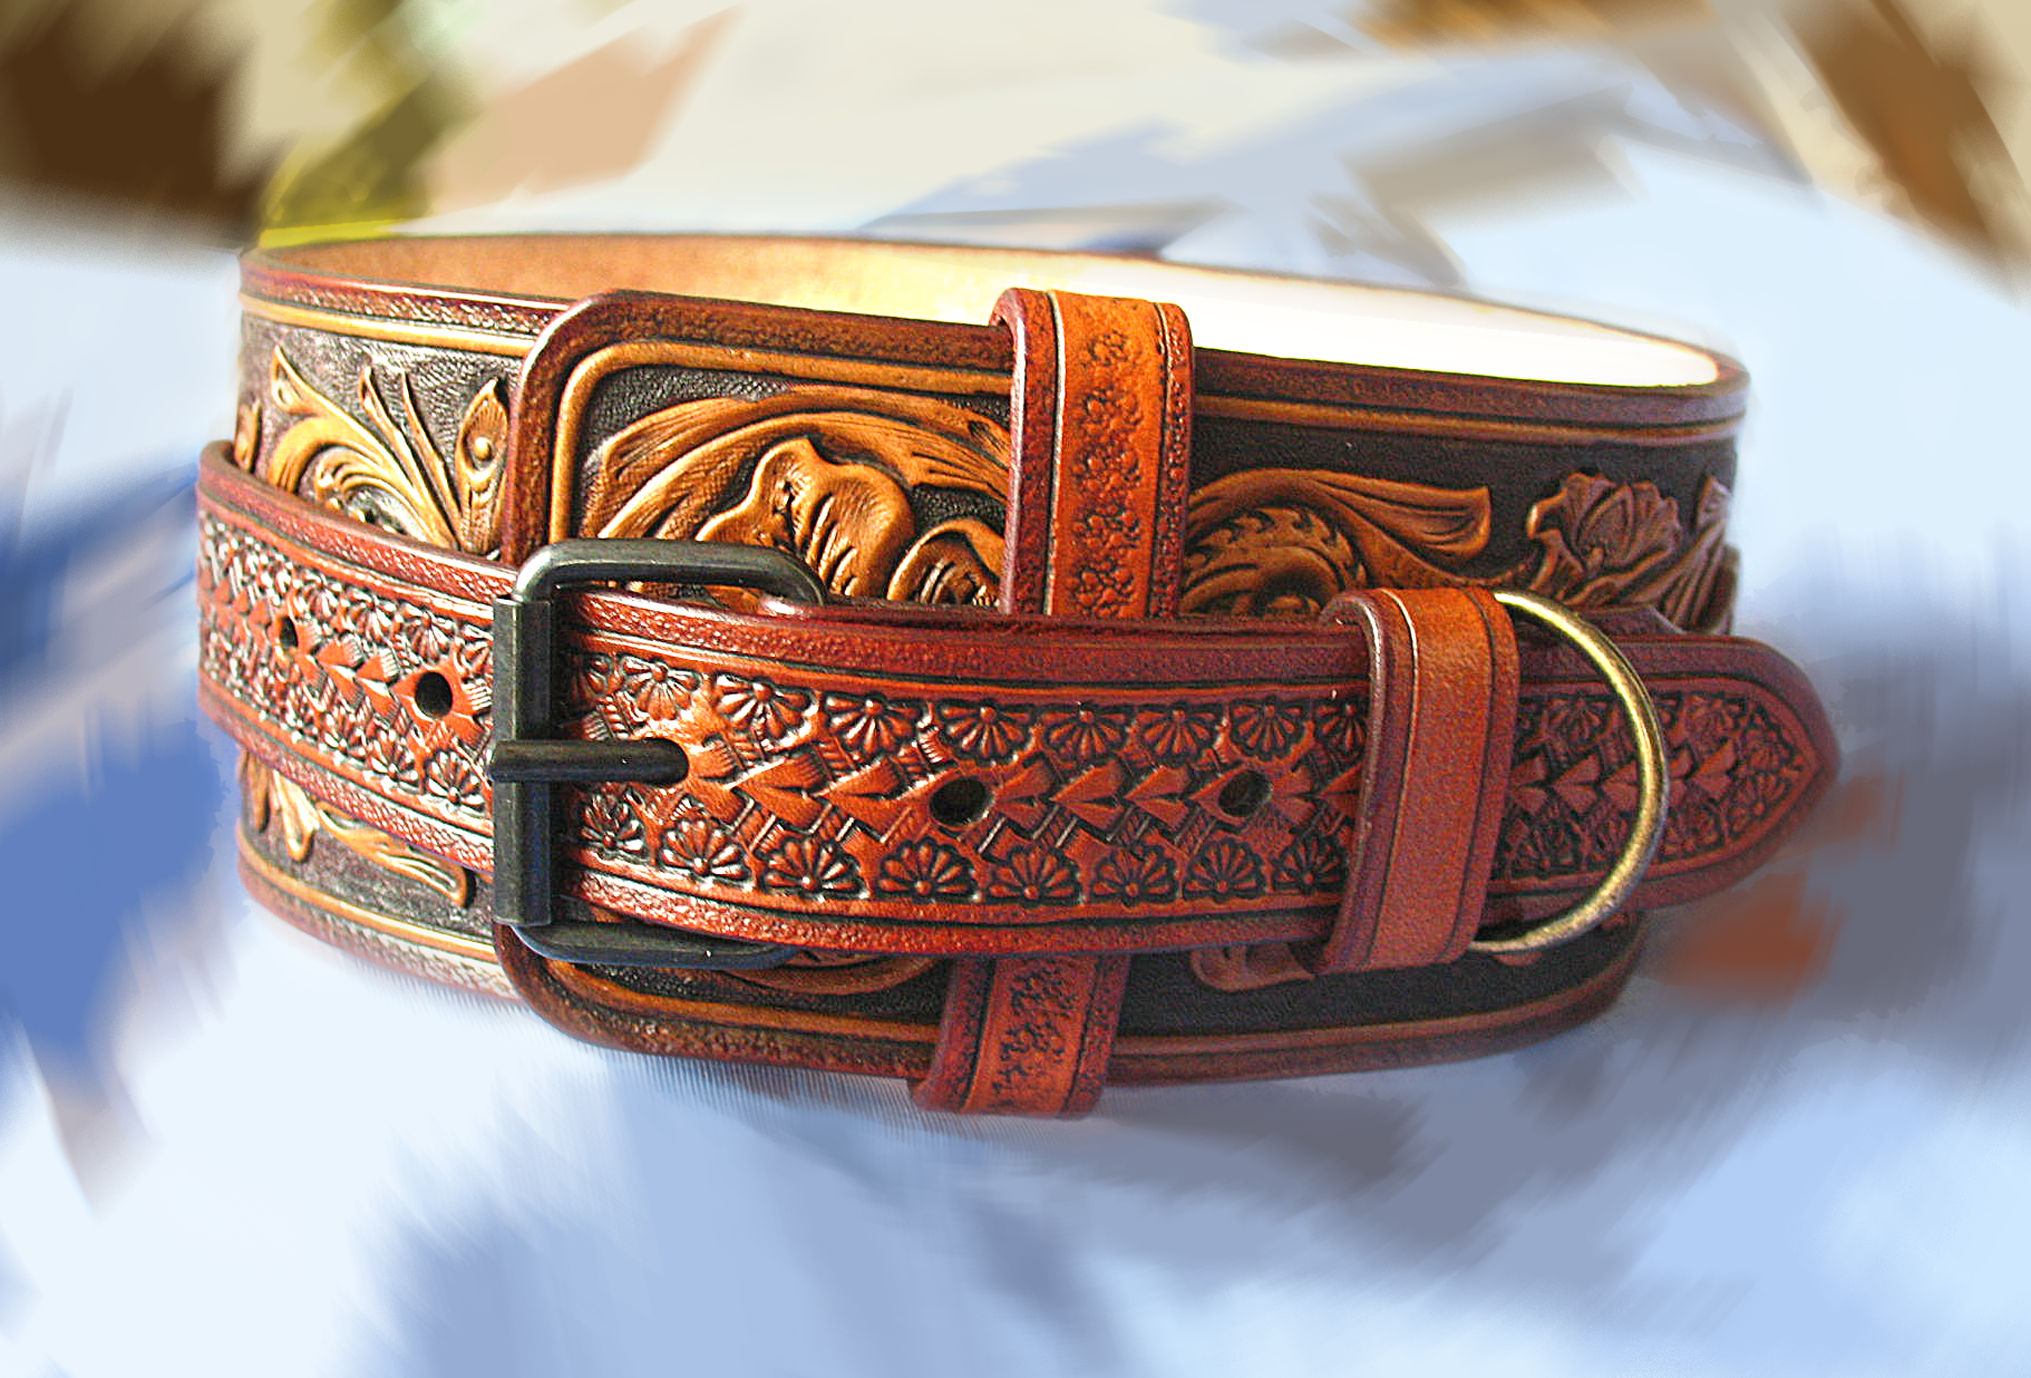 6670bca7f806 Custom Made Hand Tooled Dog Collar, Western, Sheridan Style Vegetable  Tanned Leather Ranger Type